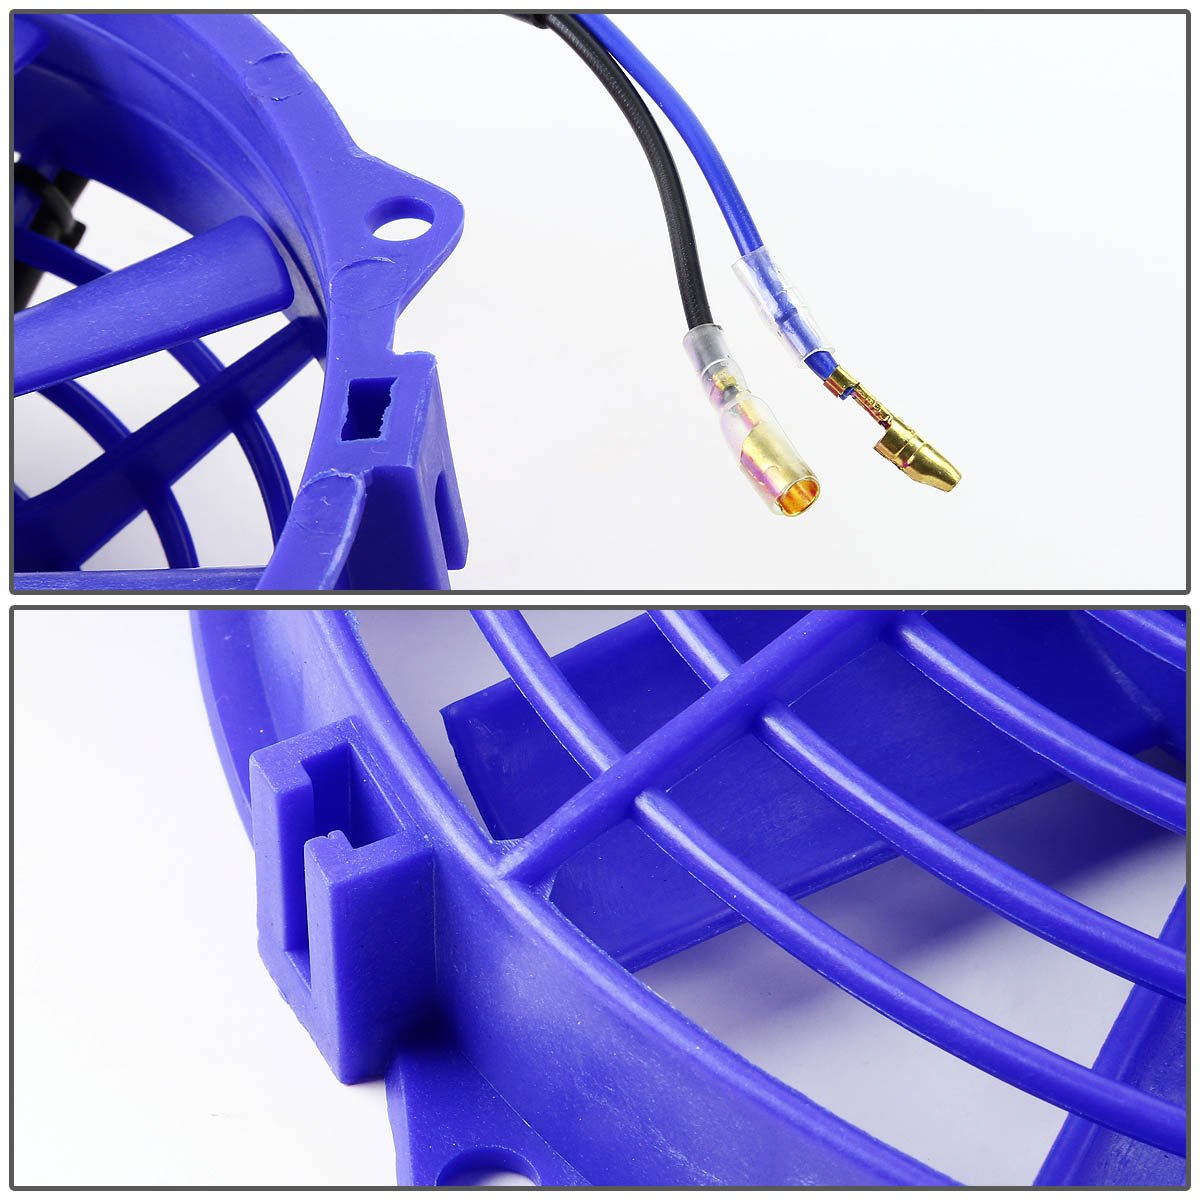 9 Inch High Performance Blue Electric Radiator Cooling Fan Kit (Pack of 2)